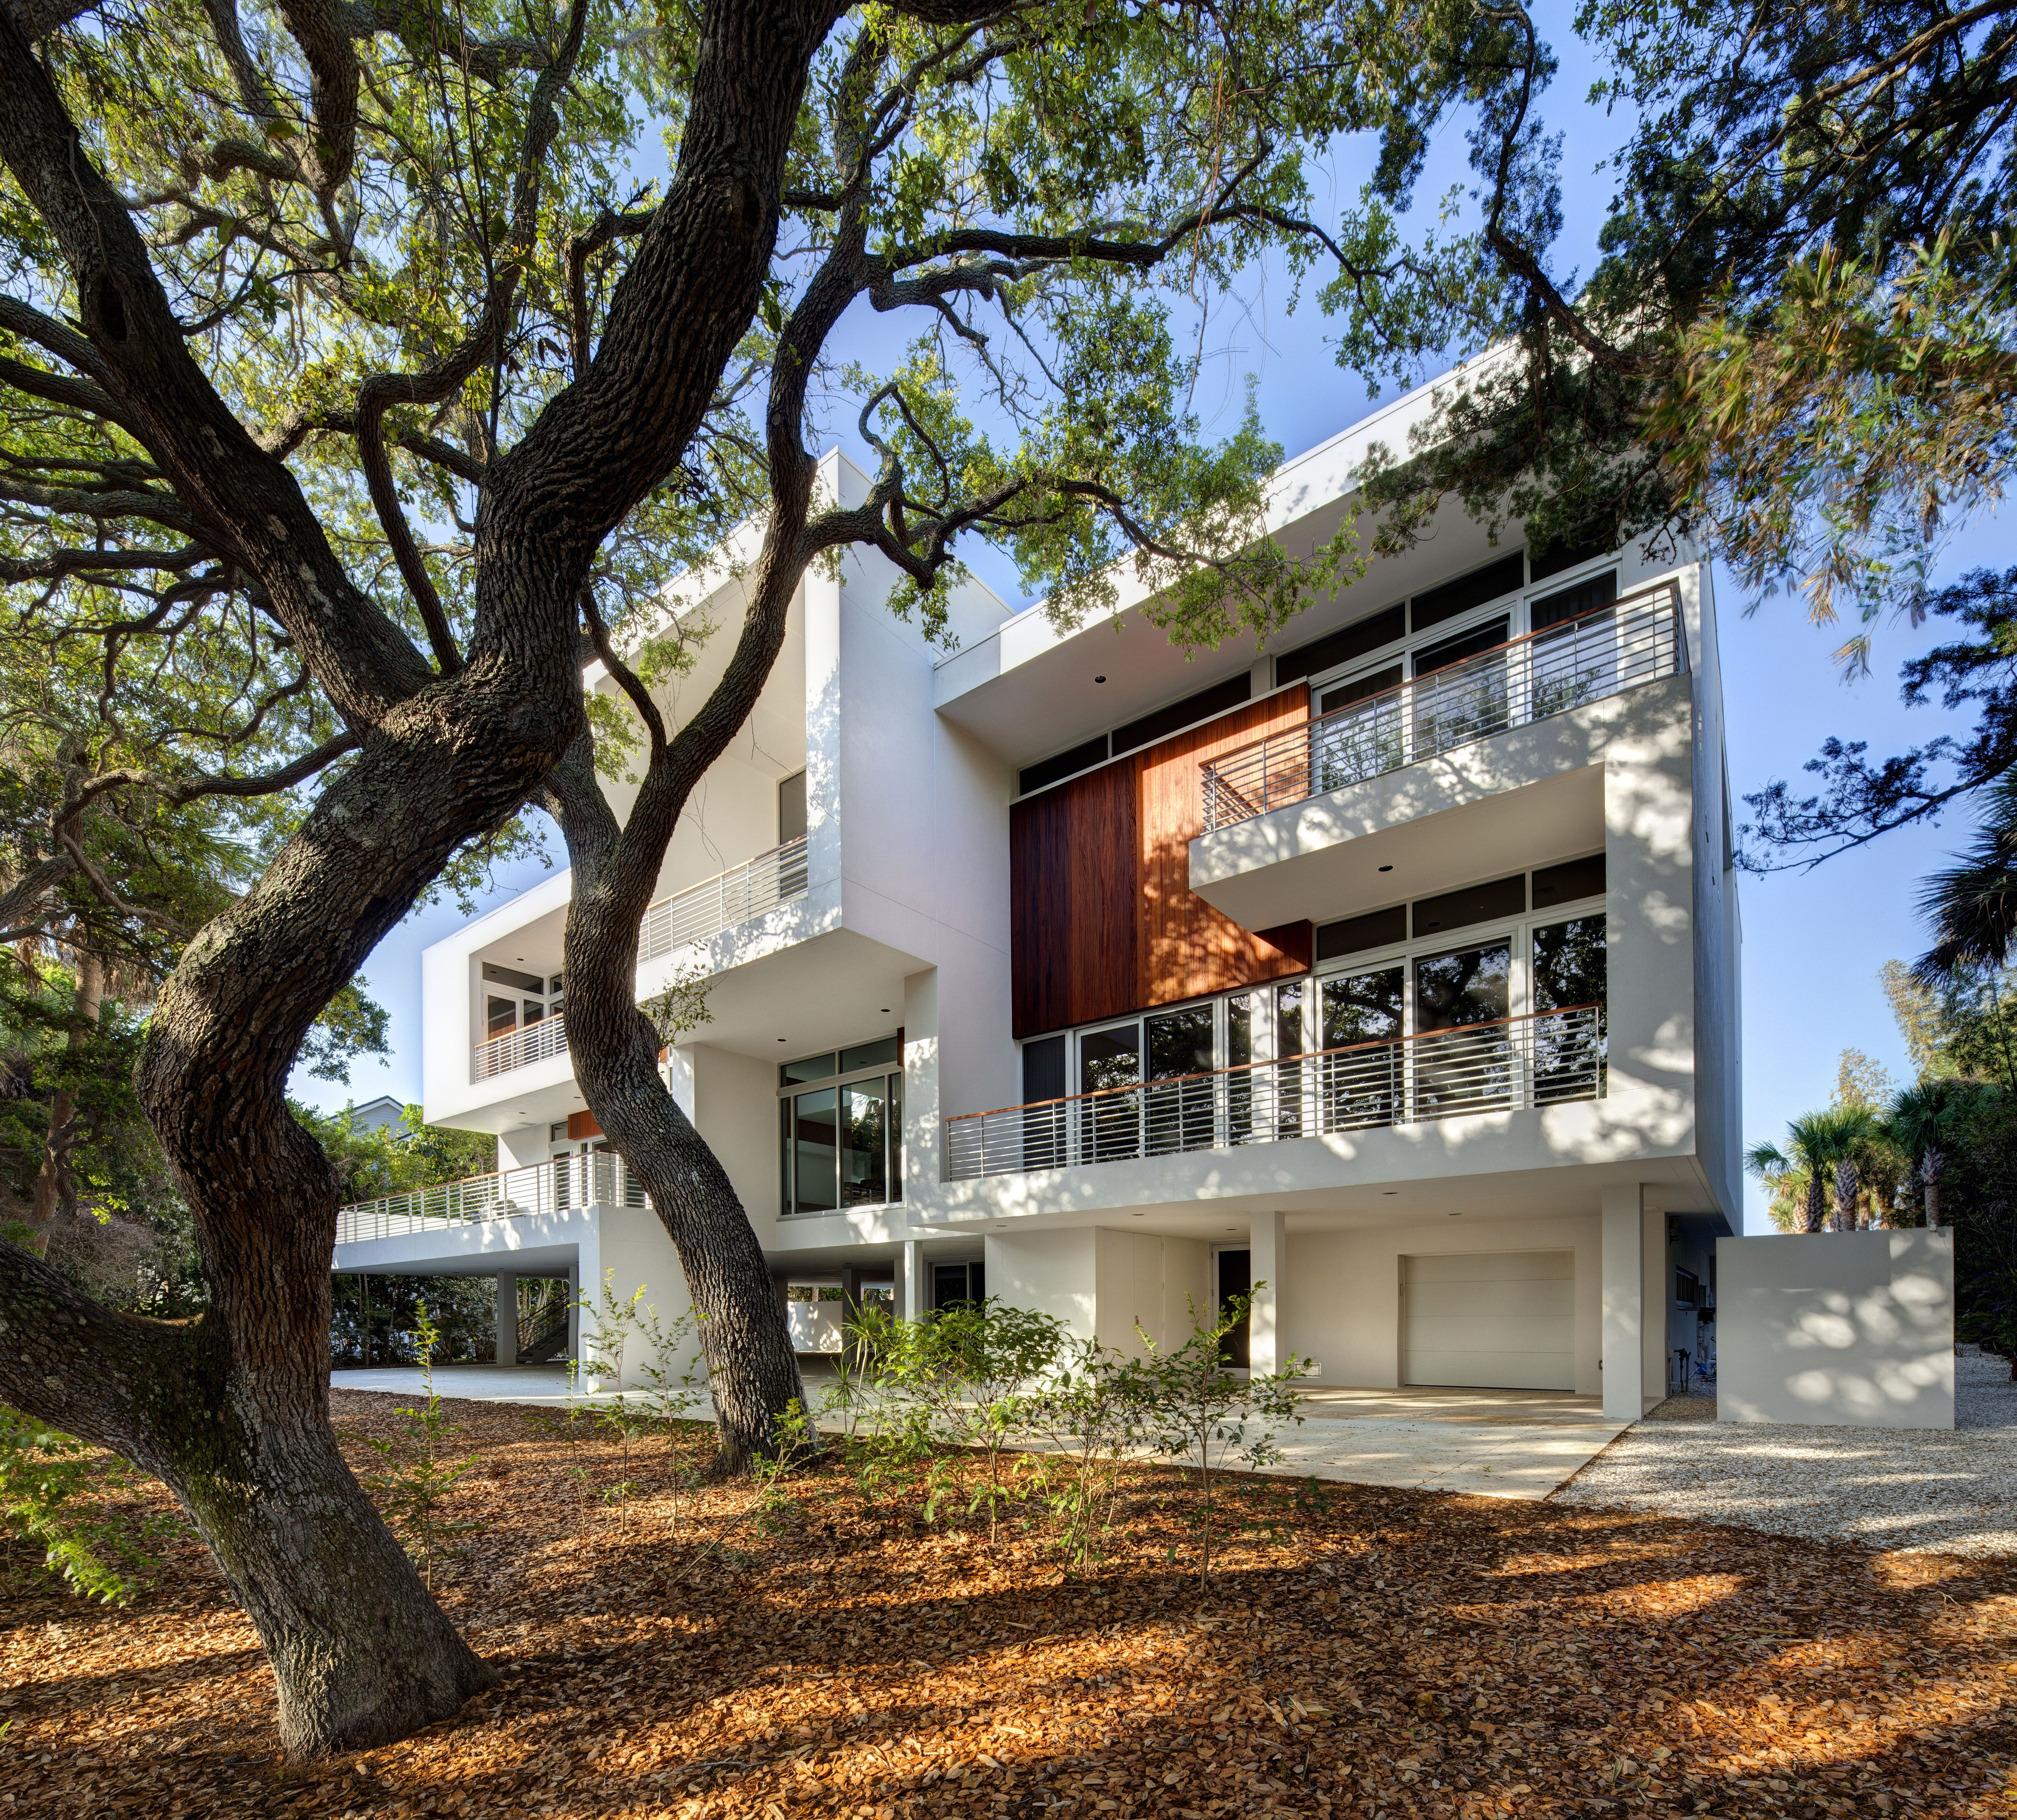 Rear Elevation From A Private Residence In Osprey FL Architect